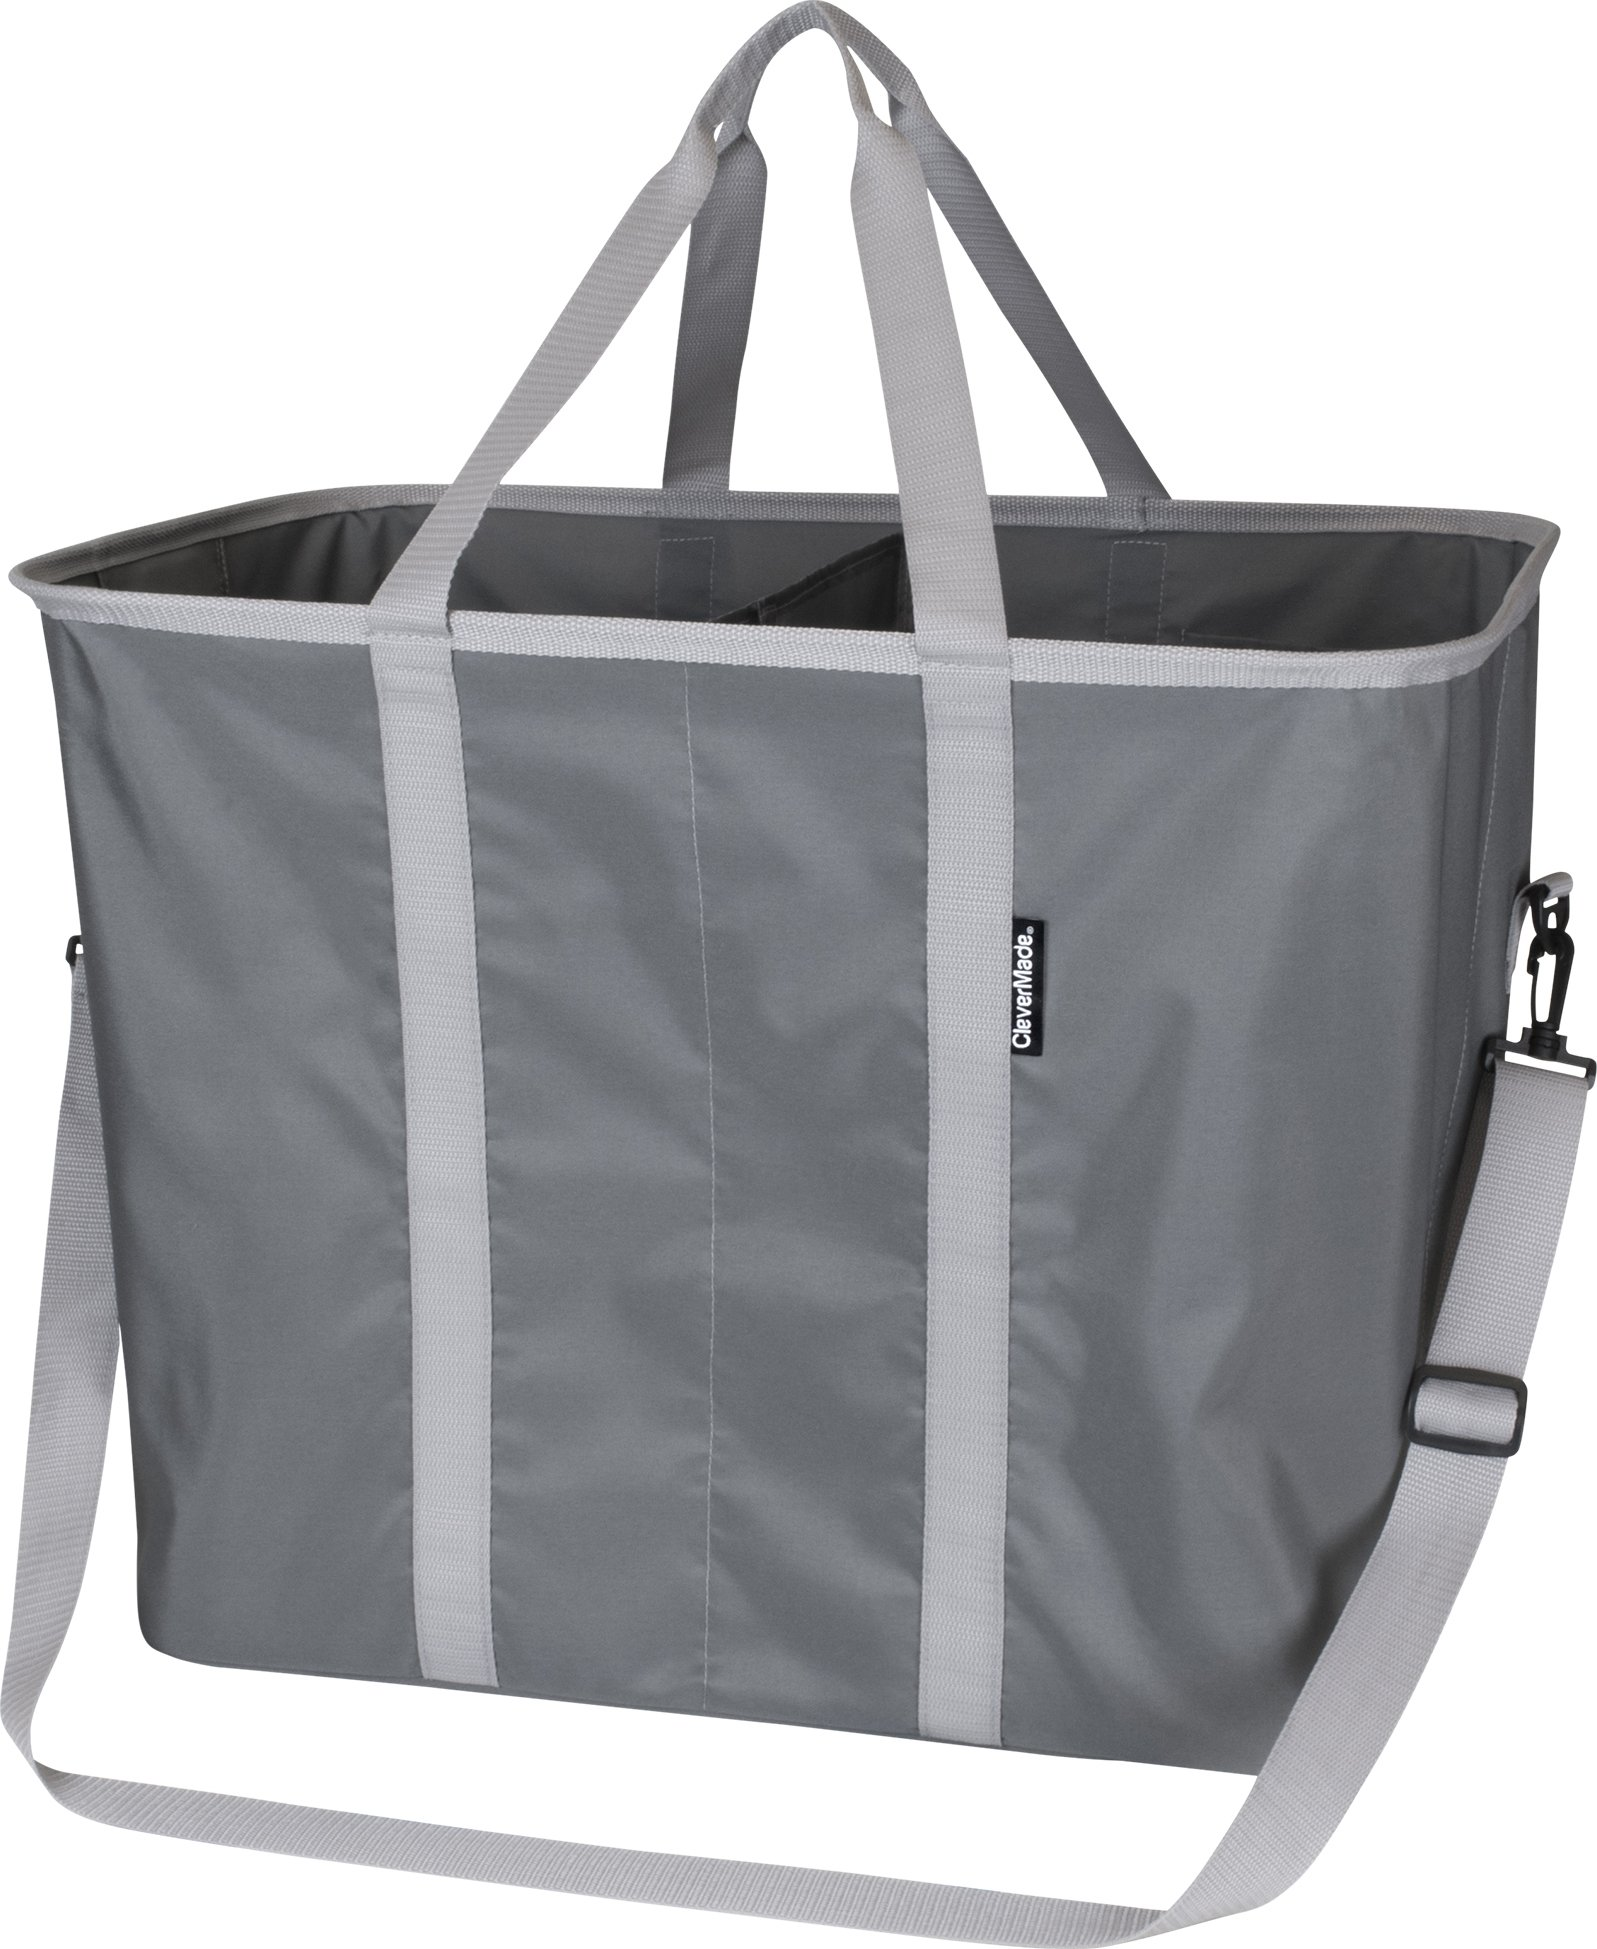 CleverMade SnapBasket Hamper - X-Large Collapsible Pop-Up Laundry Tote with Middle Divider & Adjustable Shoulder Strap, Charcoal/Grey - Hold more than 2 full loads of dirty laundry in one handy, durable carry handles allow for easy trips to the washer and dryer or laundromat Easy to open, these space saving hampers pop-up quickly and fold completely flat for storage in your bedroom, college dorm room or kids rooms Baskets can be used in your closet to store baby clothes, toys, towels, linens or even as a organizer in your home, rv or small apartment - laundry-room, hampers-baskets, entryway-laundry-room - 81zOHdnhSkL -